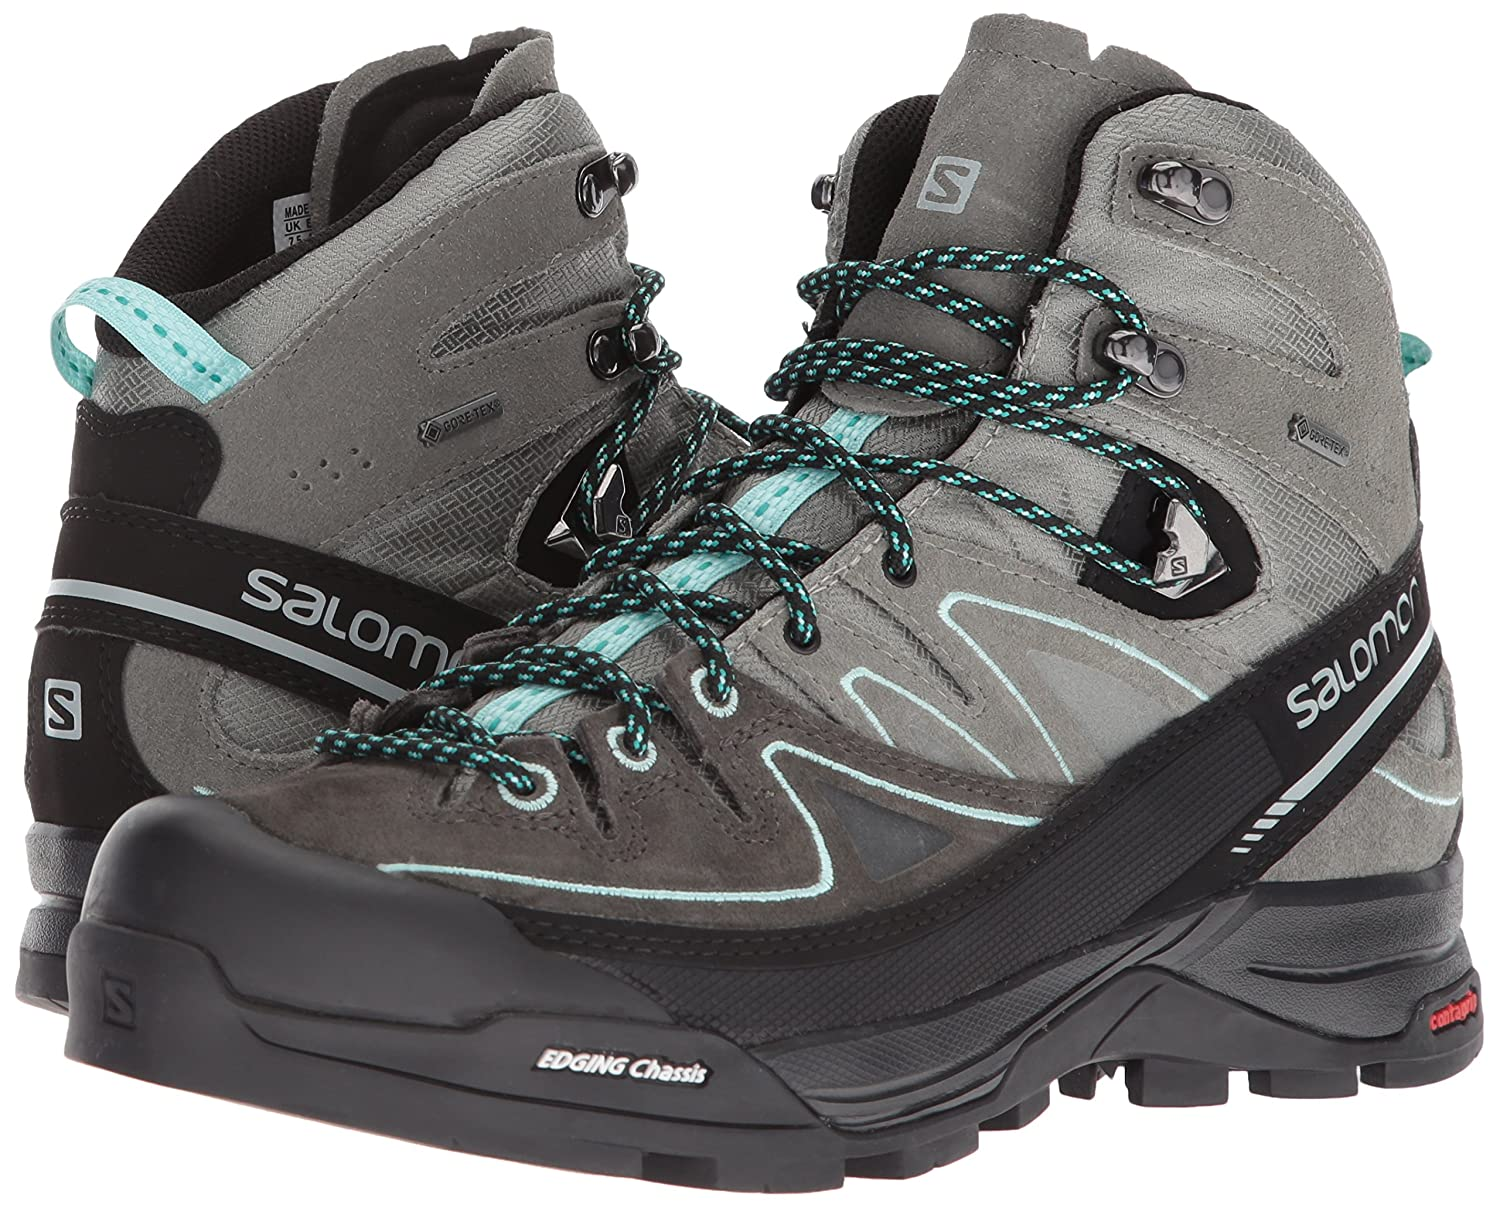 Salomon GTX X Alp Mid LTR GTX Salomon Hiking Shoe - Women's B01HD2Z46C 9 B(M) US|Shadow, Castor Gray, Aruba Blue bde41d